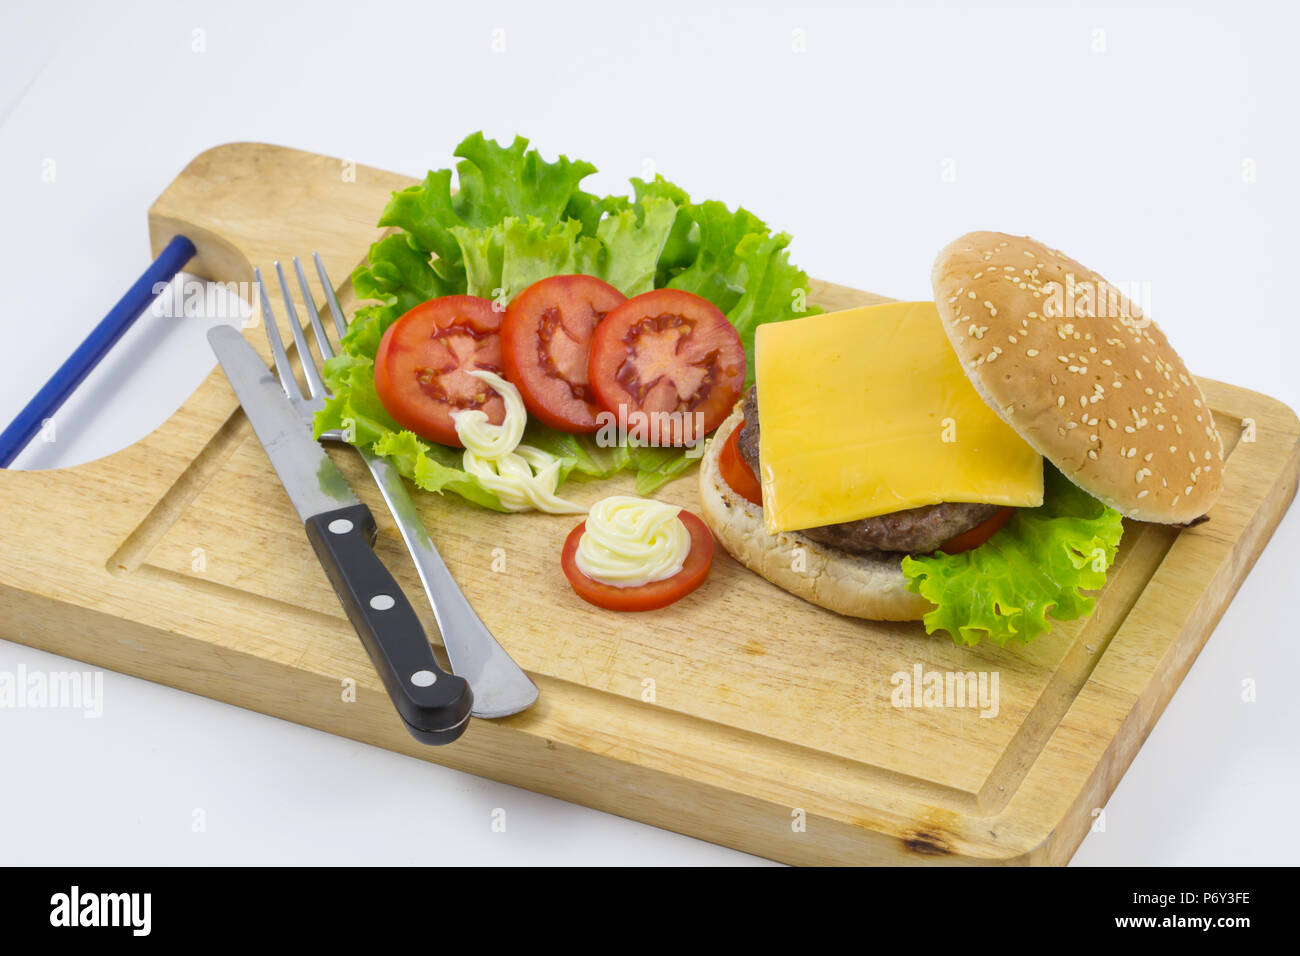 Home made hamburger with lettuce, tomato, cheese, beef meat and french fries placed on wooden background , Fresh tasty burger background, Stock Photo